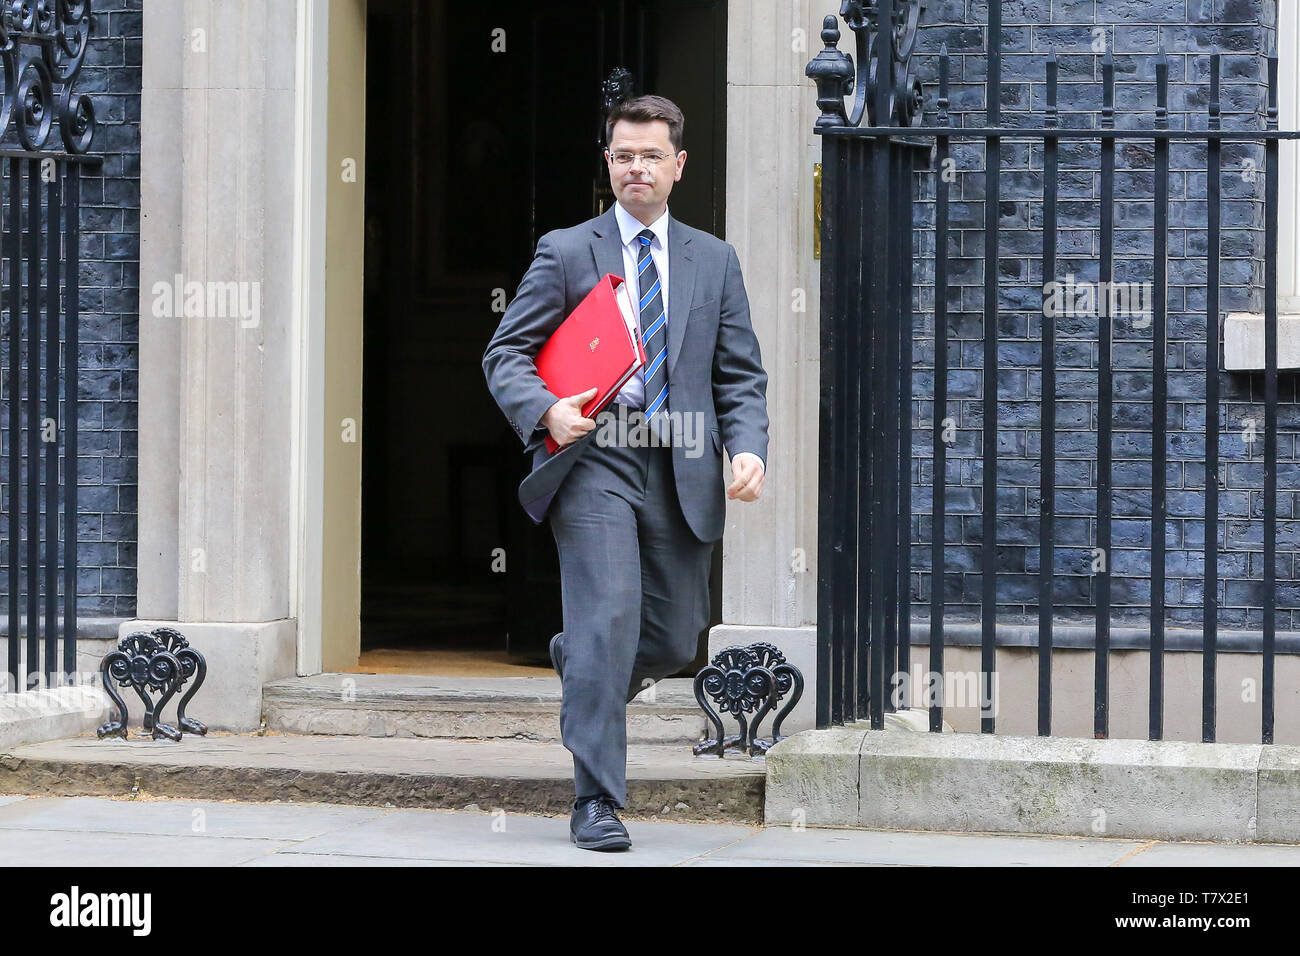 Communities Secretary James Brokenshire seen in Downing Street. On 14 June 2017, a fire broke out in the 24-storey Grenfell Tower block of flats in North Kensington, West London where 72 people died, more than 70 others were injured and 223 people escaped. The UK Government is to fund an estimated £200 million to replacement of unsafe Grenfell style cladding on around 170 high-rise private residential buildings after private building owners failed to take action. Communities Secretary James Brokenshire said inaction from building owners had compelled the government to act. - Stock Image